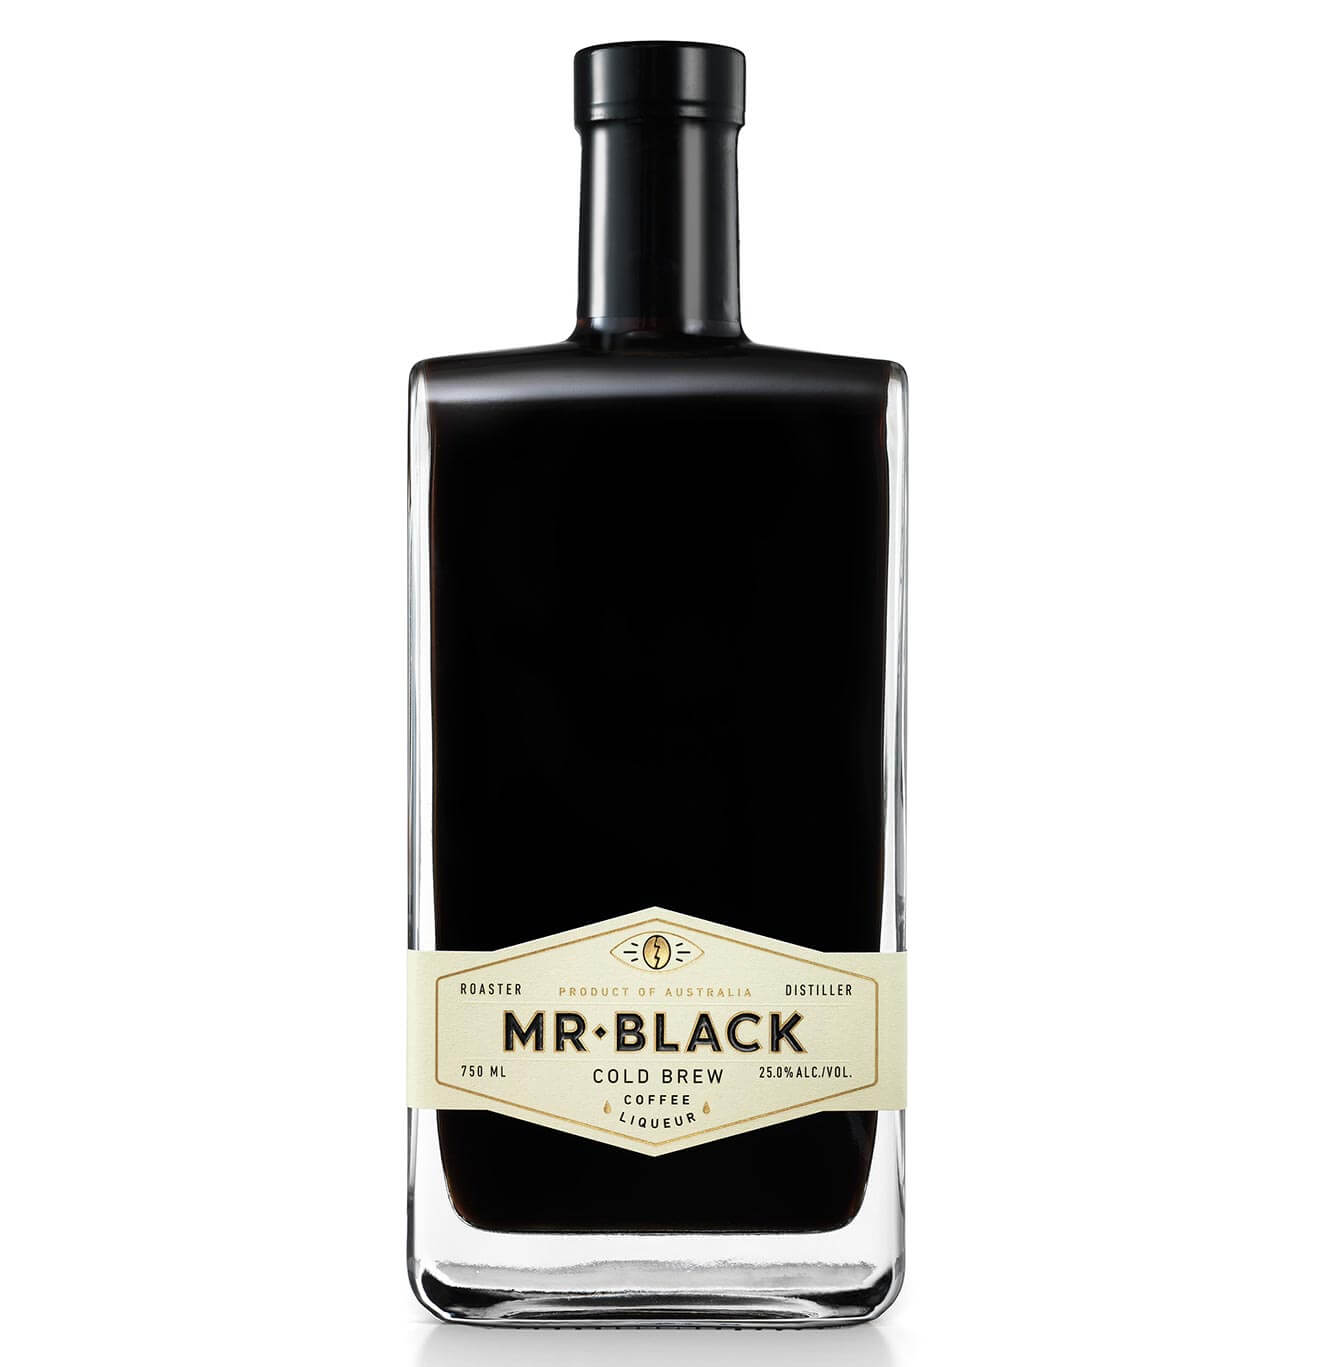 Mr Black Cold Brew Coffee Liqueur, full bottle on white